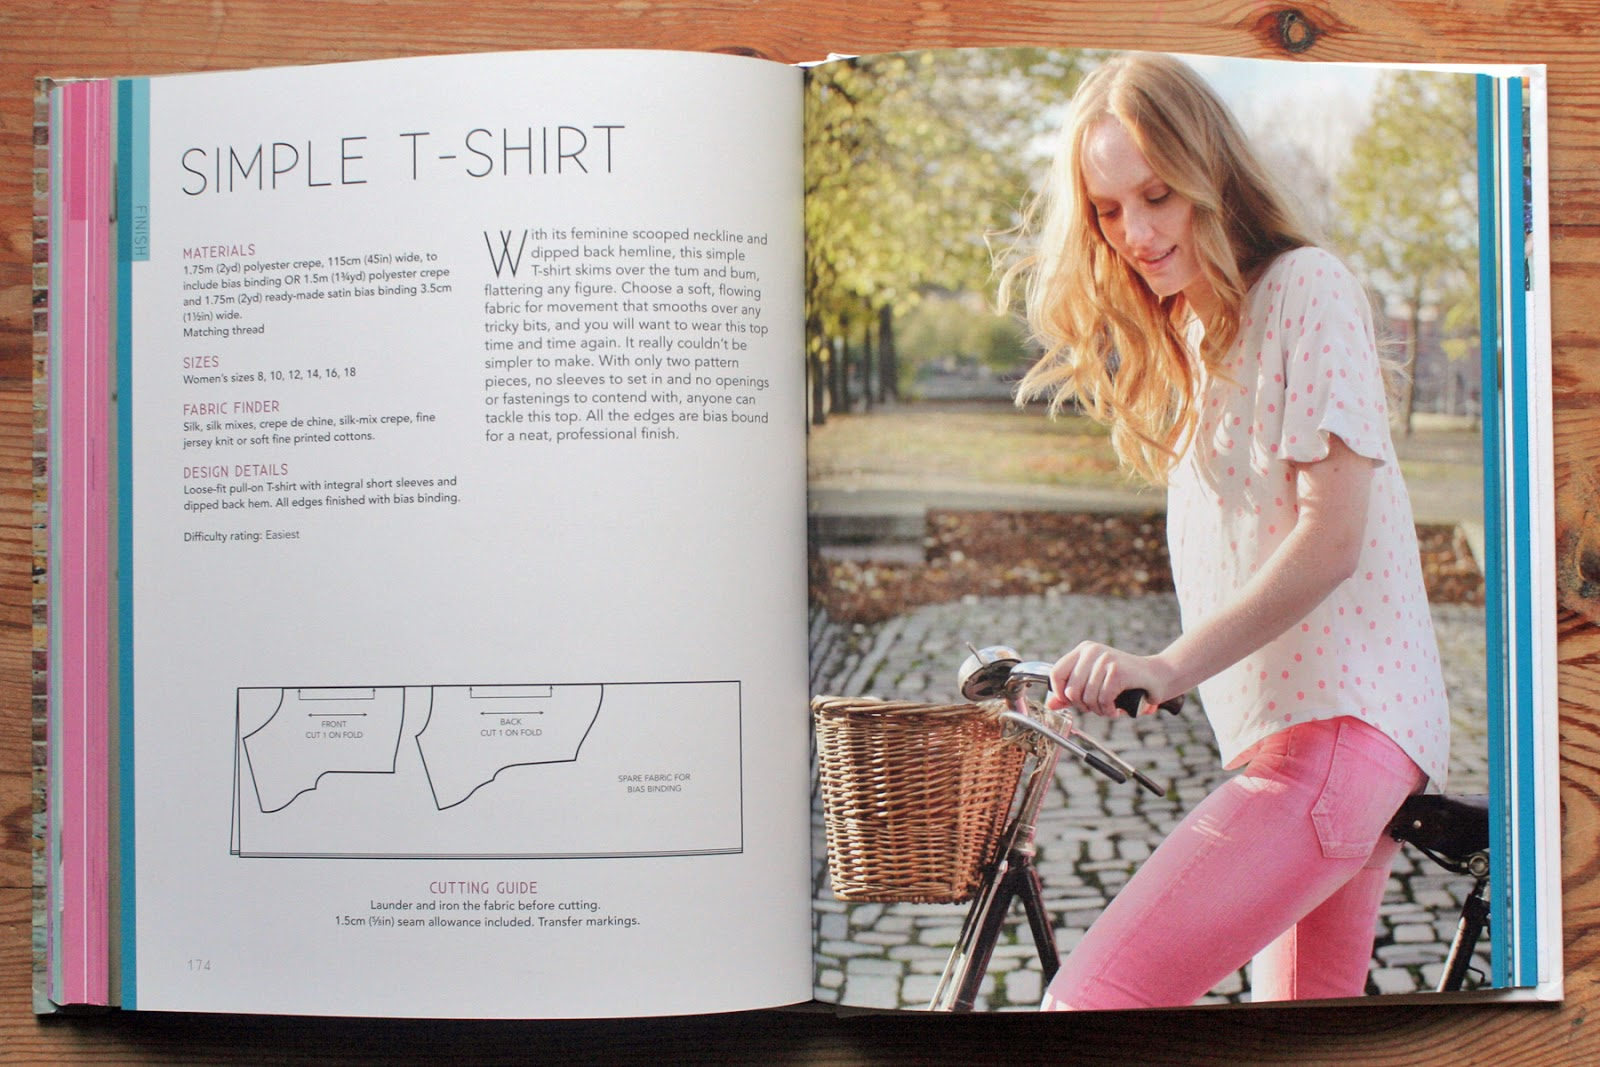 Design your own t-shirt by cutting